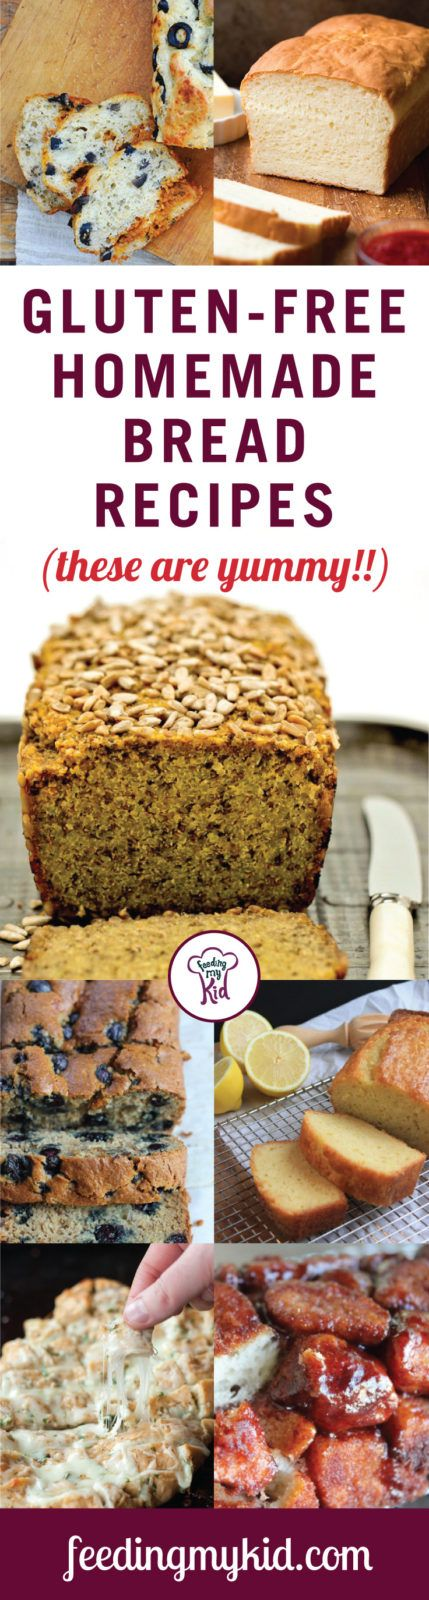 This is a must share! Thinking of going gluten free but can't live without the goodness of bread? Here're some great gluten free bread recipes just for you! Feeding My Kid is a website for parents, filled with all the information you need about how to raise your kids, from healthy tips to nutritious recipes. #bread #recipes #glutenfree